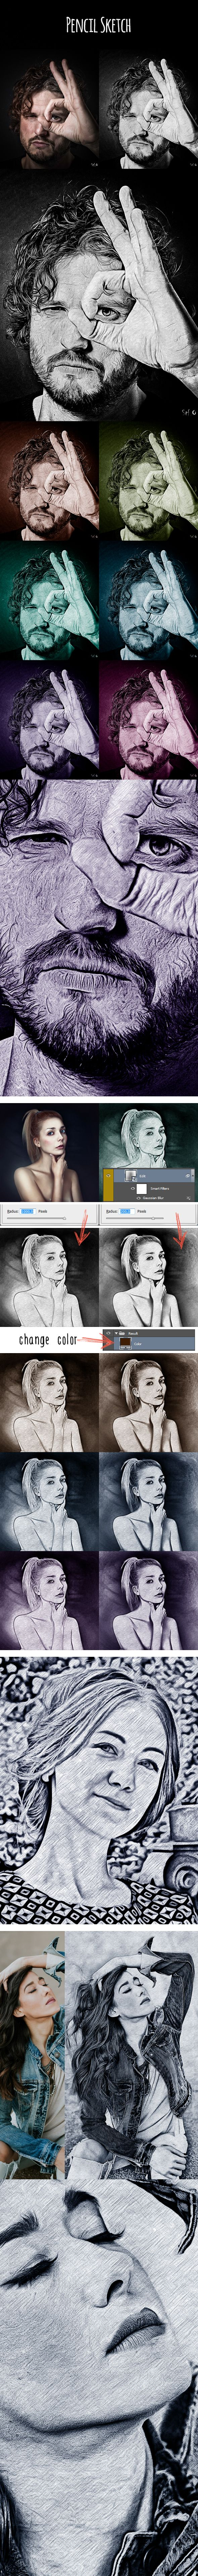 Pencil sketch photo effects actions download here https graphicriver net item pencil sketch 20133094refalena994